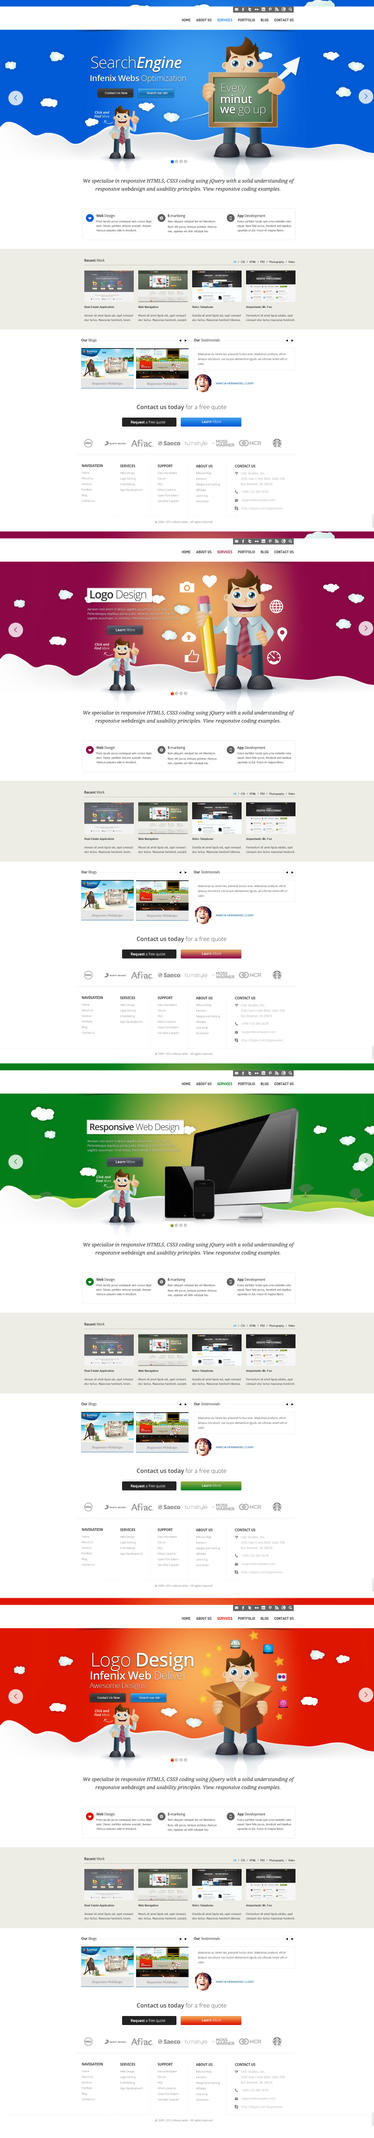 Seo + Marketing Company Web Design by vasiligfx